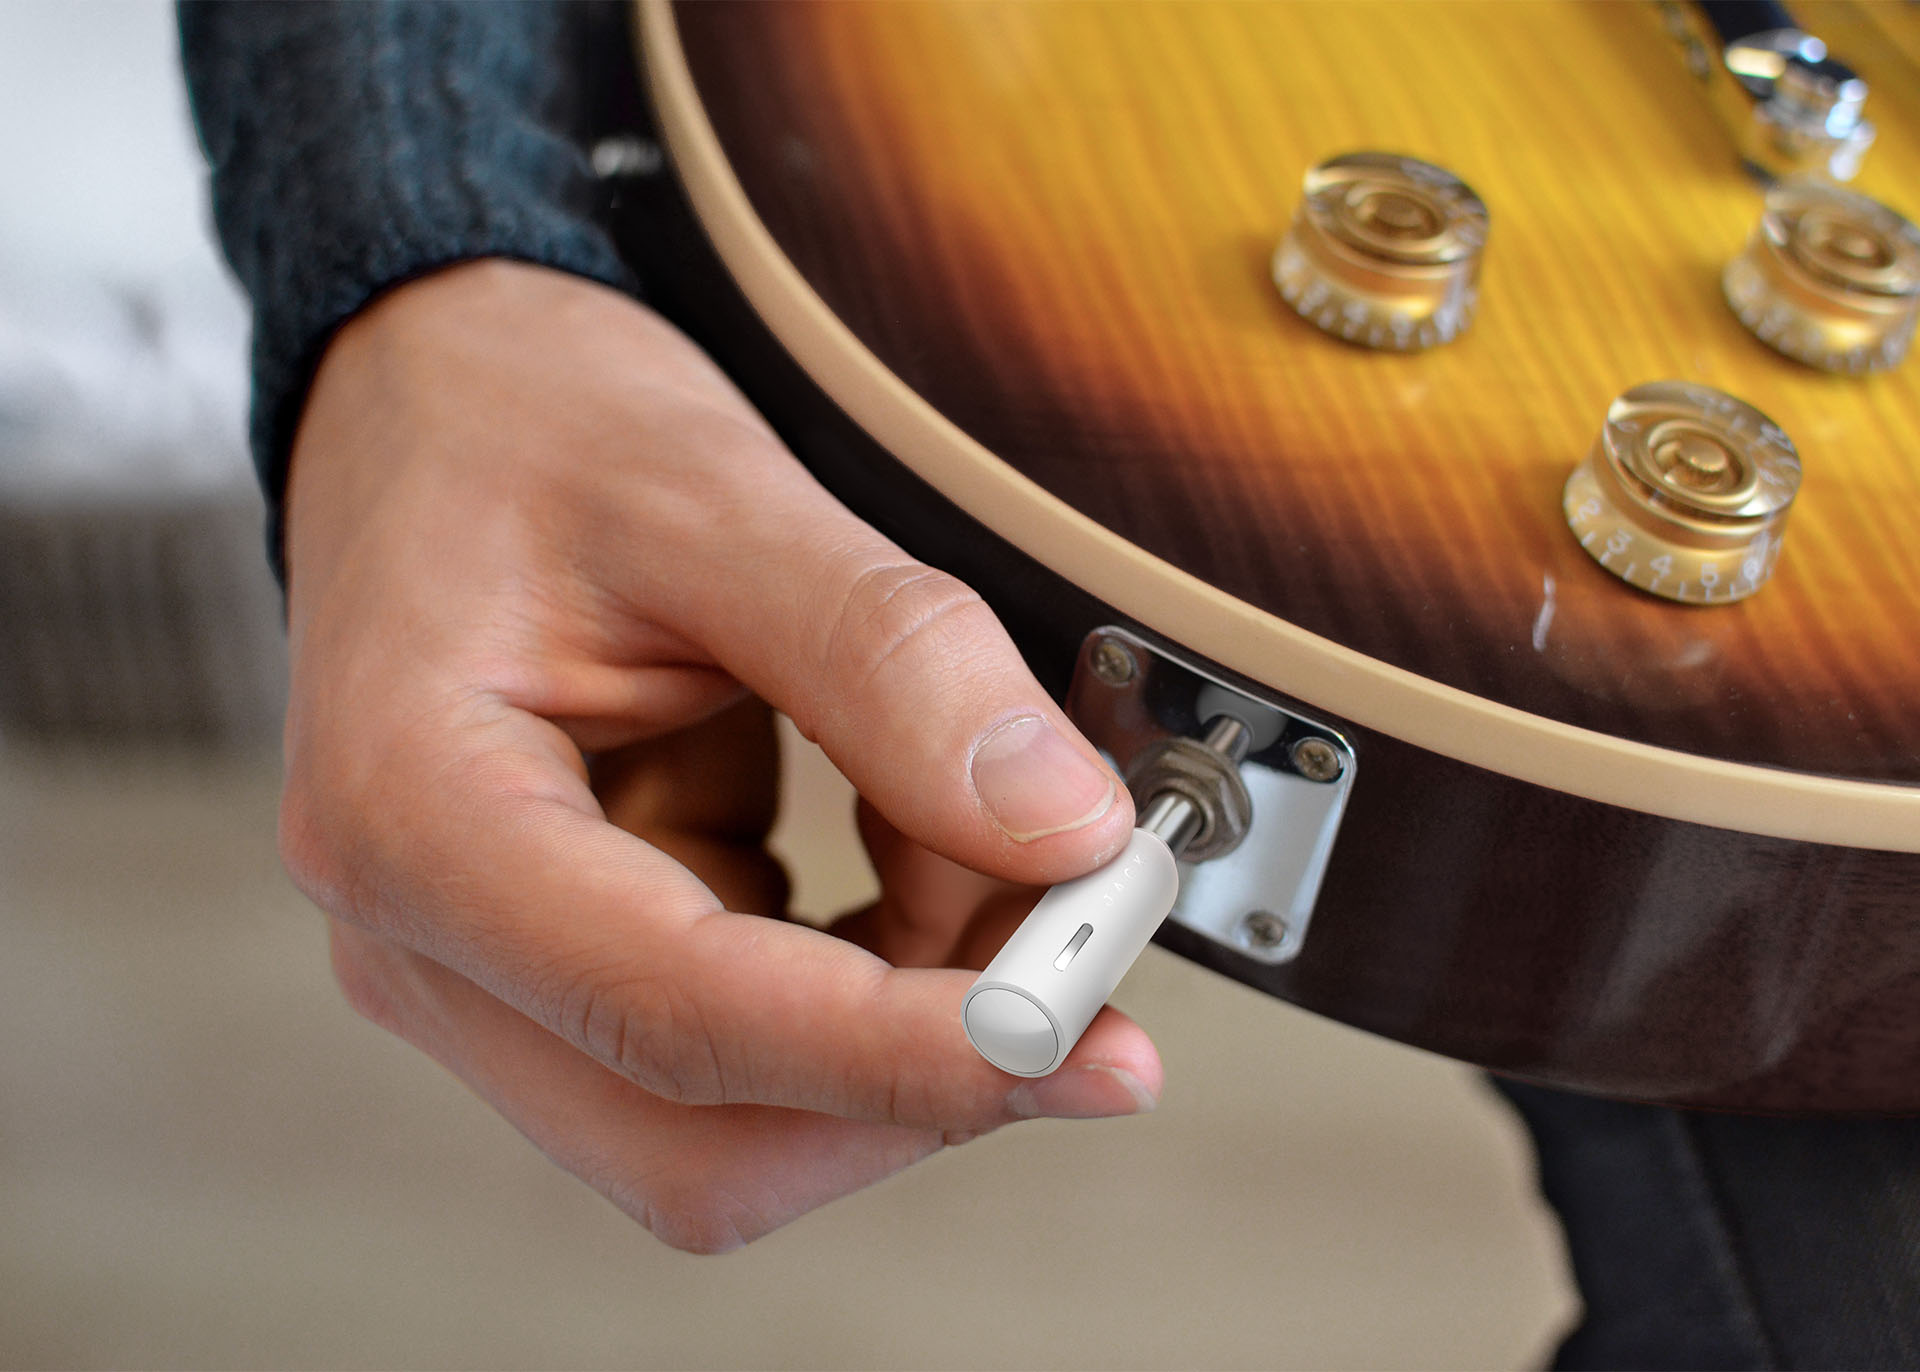 A hand plugging the Jack plug transmitter into the socket of a guitar